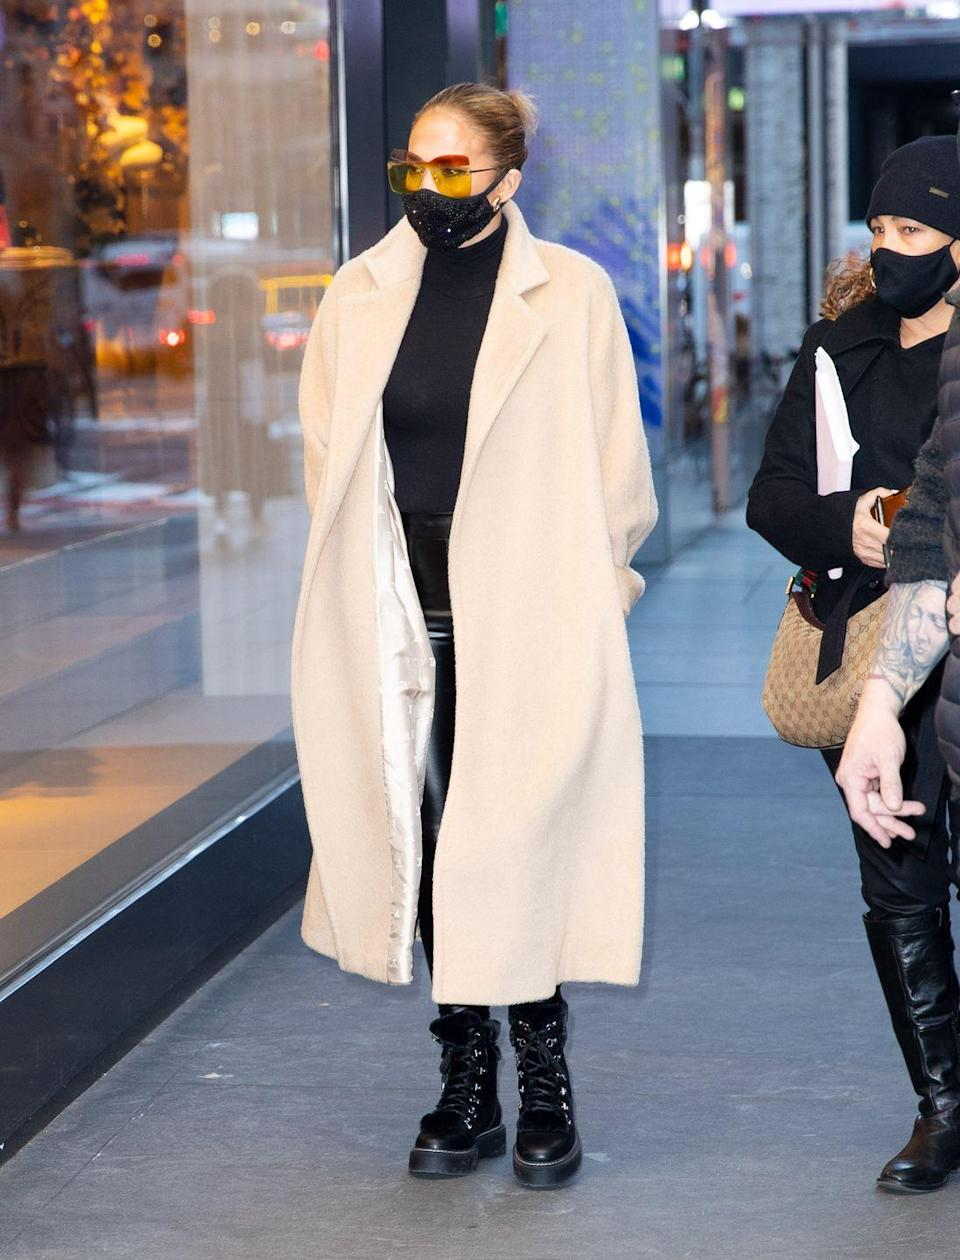 """<p>The 51-year-old was photographed enjoying a spot of Christmas shopping on December 8.</p><p>For the outing, the singer wore a pair of black combat boots, skin-tight leggings, a camel-coloured long coat and orange-tinted sunglasses. She also wore a black face mask.</p><p><a class=""""link rapid-noclick-resp"""" href=""""https://www.elle.com/uk/fashion/what-to-wear/articles/g31087/best-camel-coats-to-buy-now-high-street-topshop-mango-warehouse/"""" rel=""""nofollow noopener"""" target=""""_blank"""" data-ylk=""""slk:SHOP CAMEL COATS"""">SHOP CAMEL COATS</a></p>"""